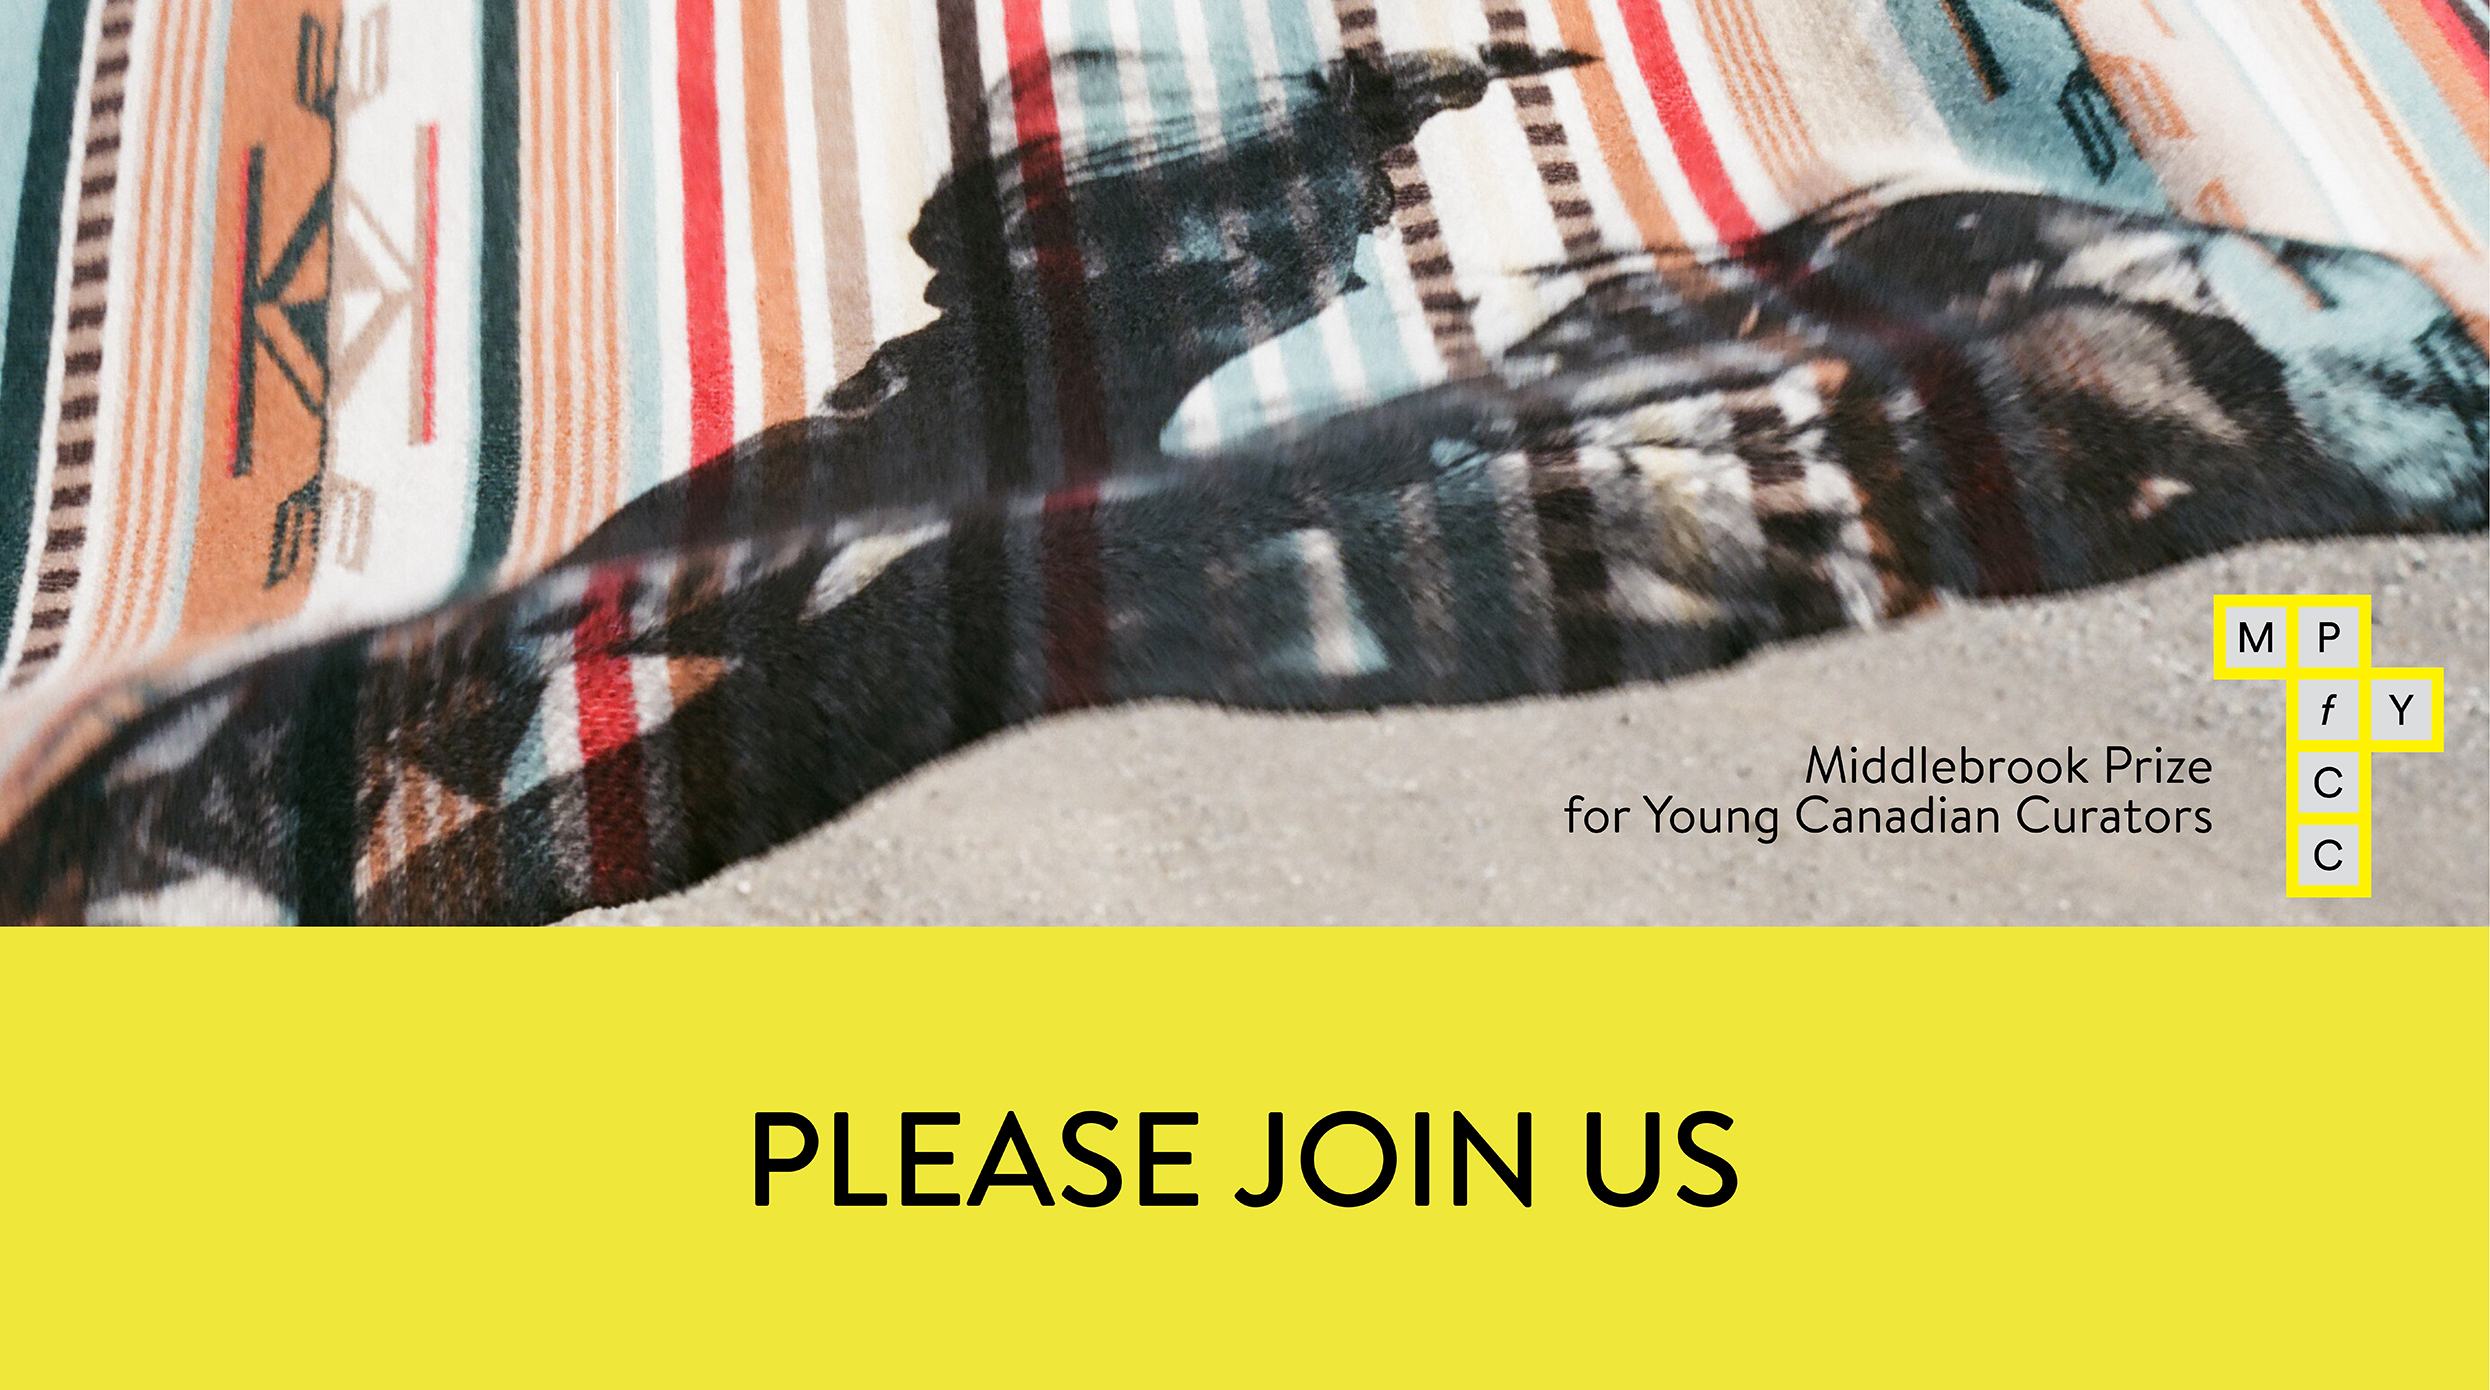 Announcing 2019 Middlebrook Prize Exhibition